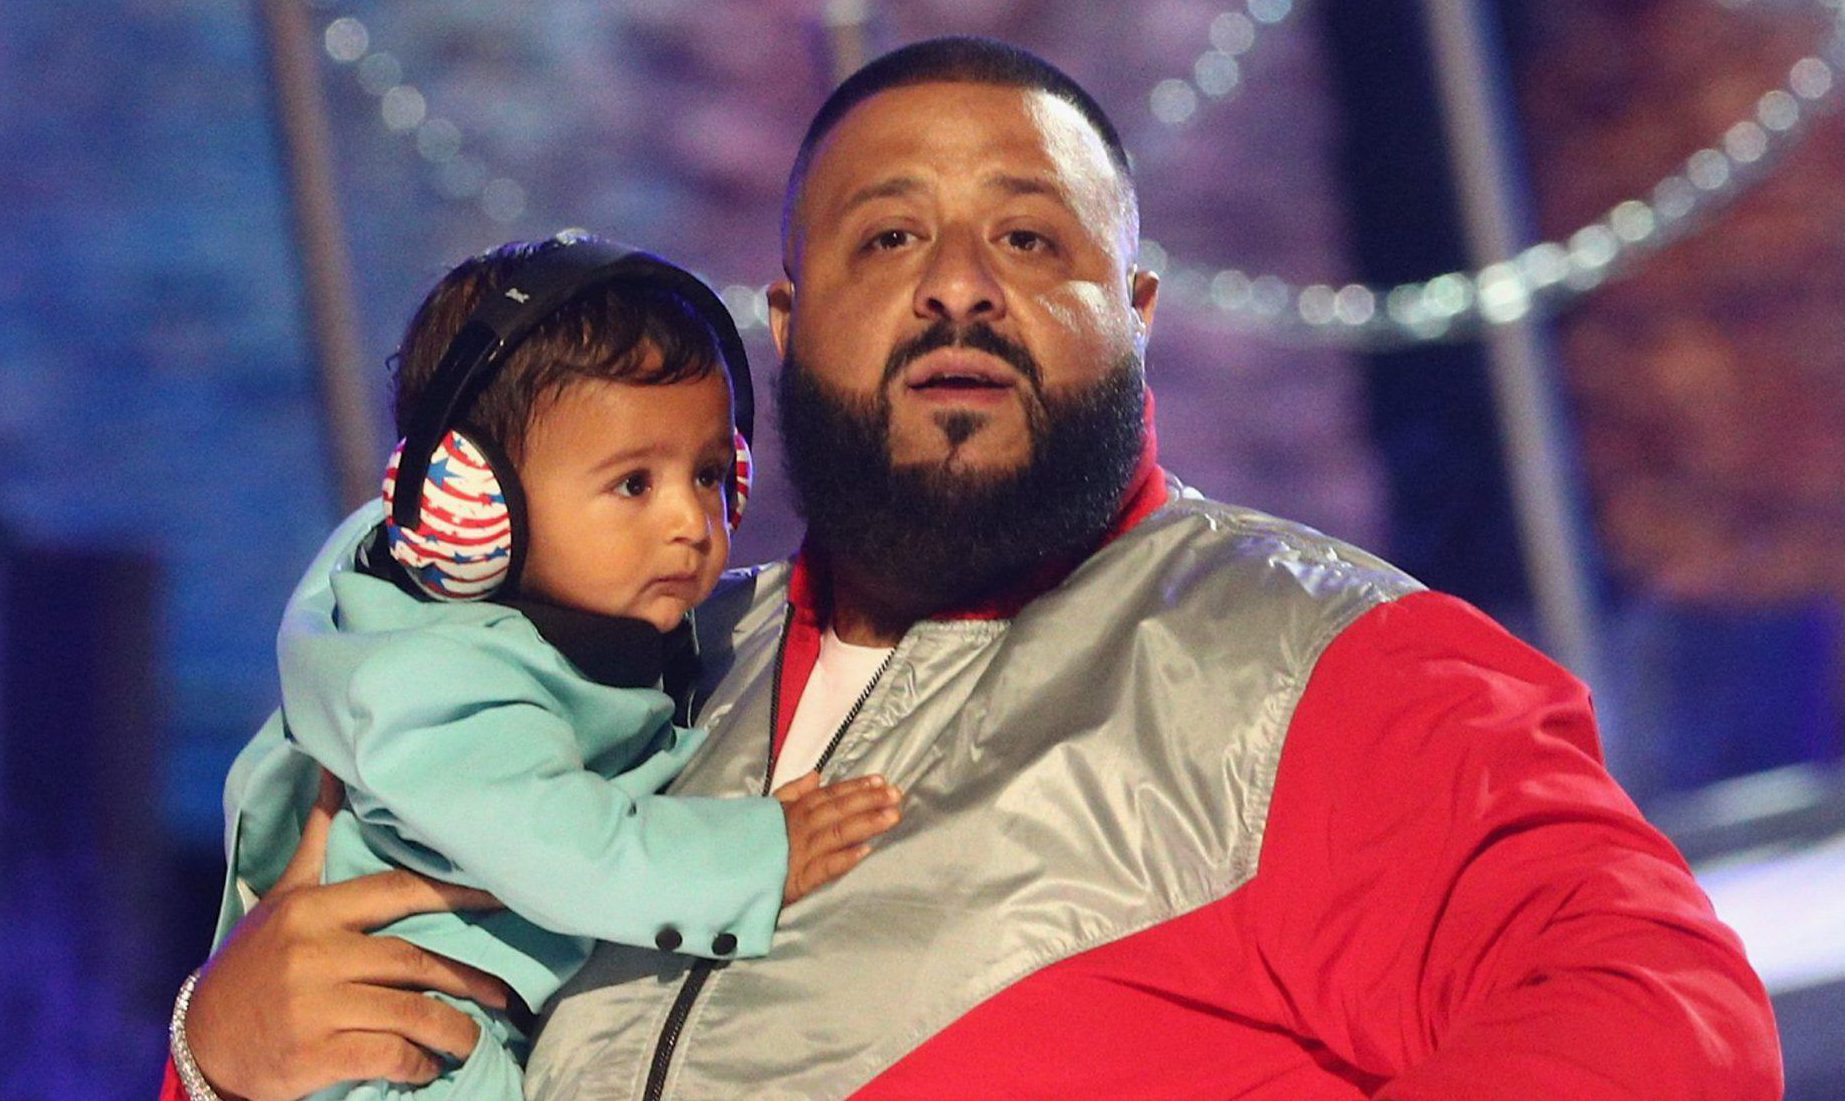 DJ Khaled's got some 'great news' – but won't tell us what it is yet